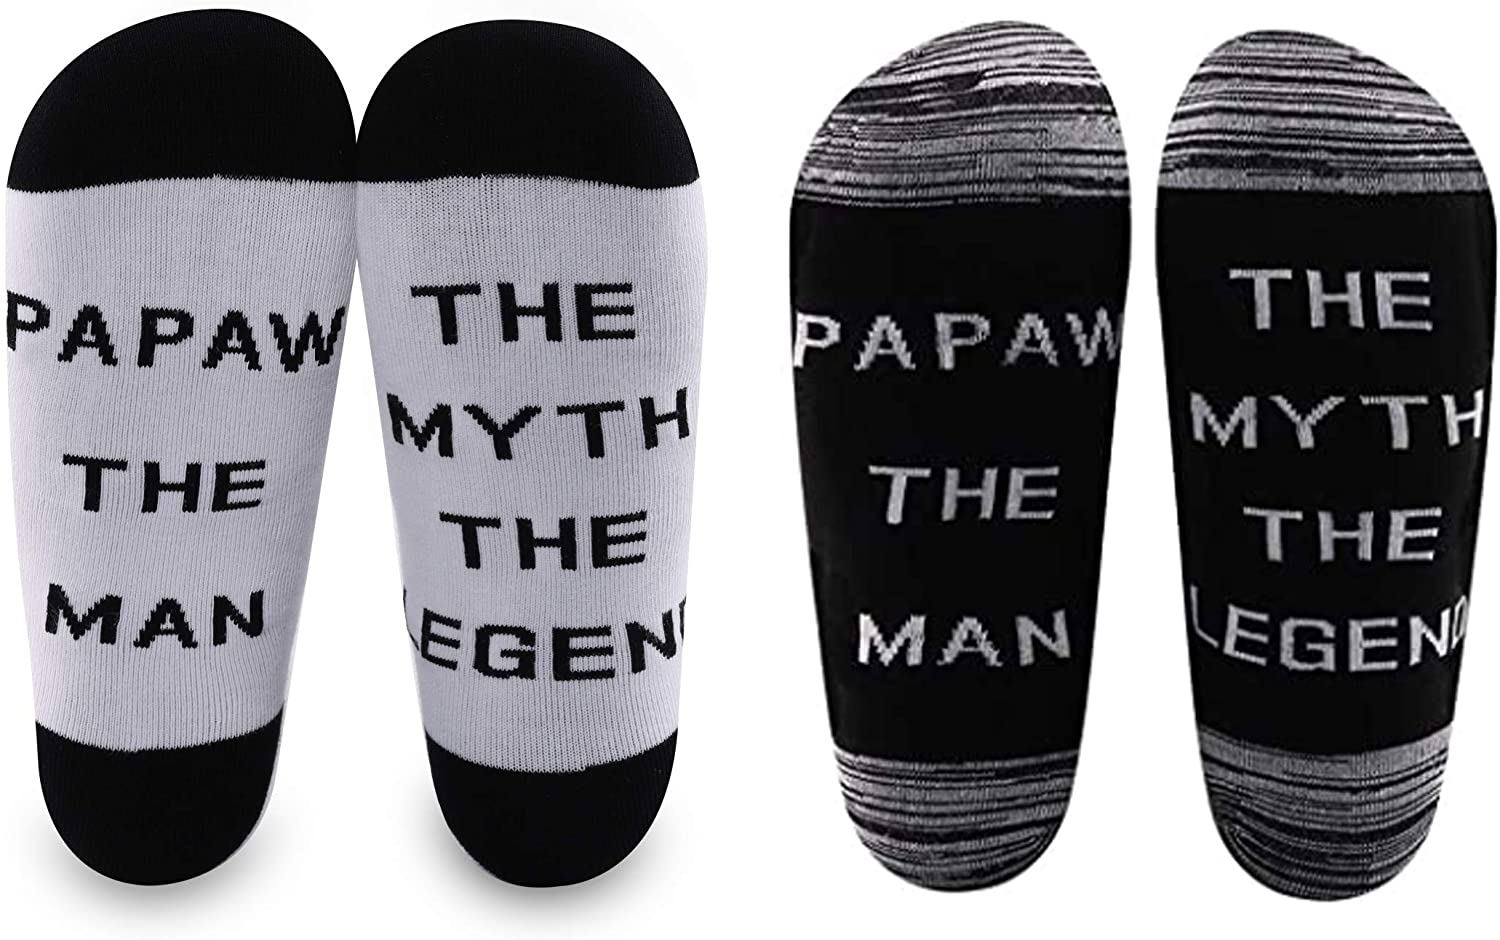 LEVLO Father's Day Gift Papaw Socks Papaw The Man The Myth The Legend Cotton Socks Gift for Grandpa Dad